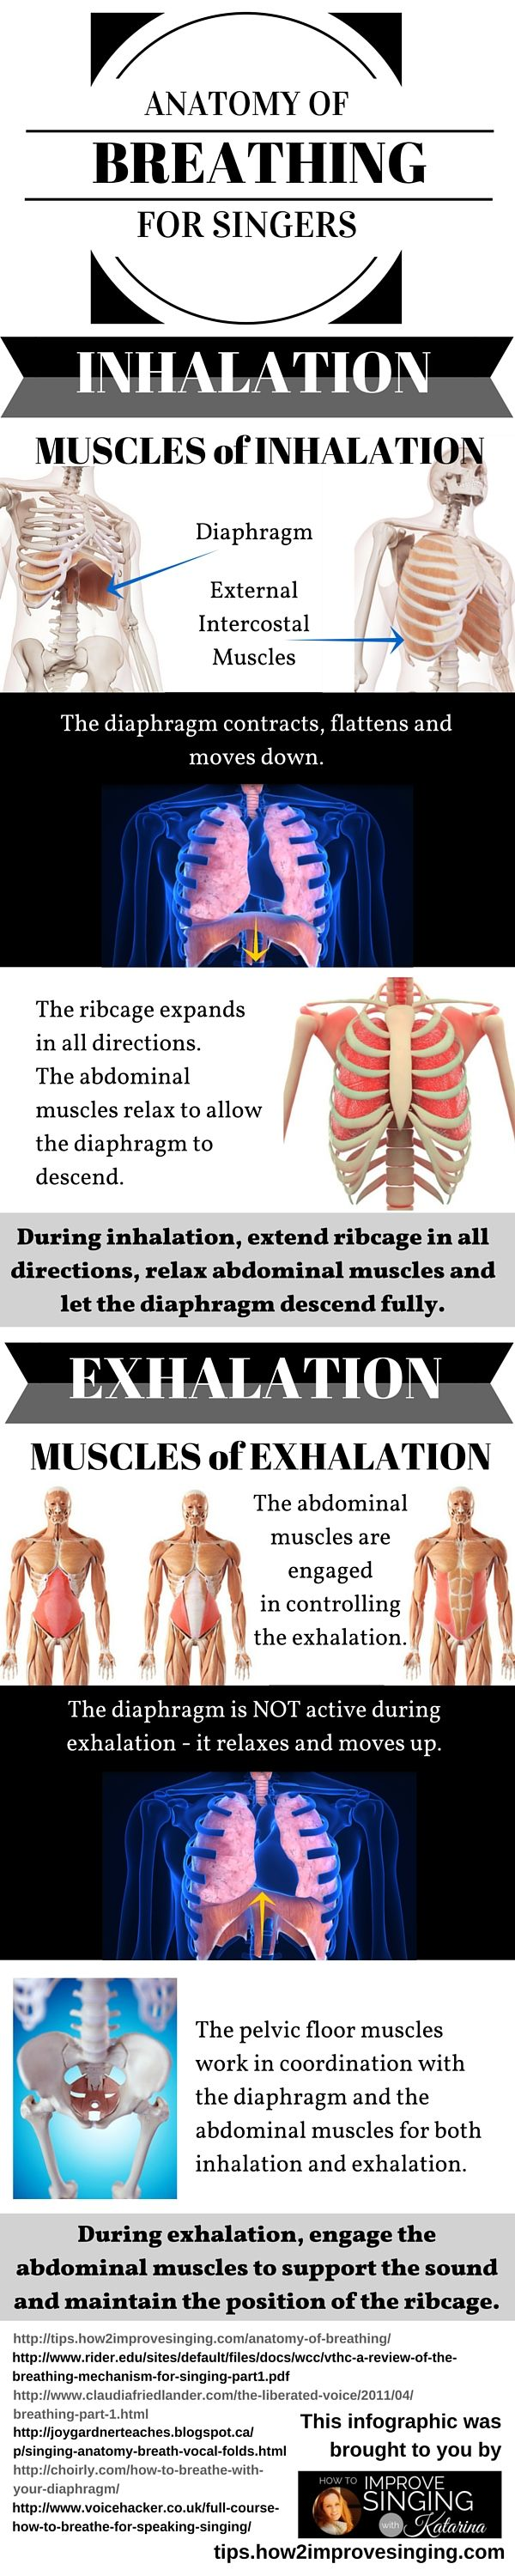 Everything you need to know about the anatomy of breathing for singing.